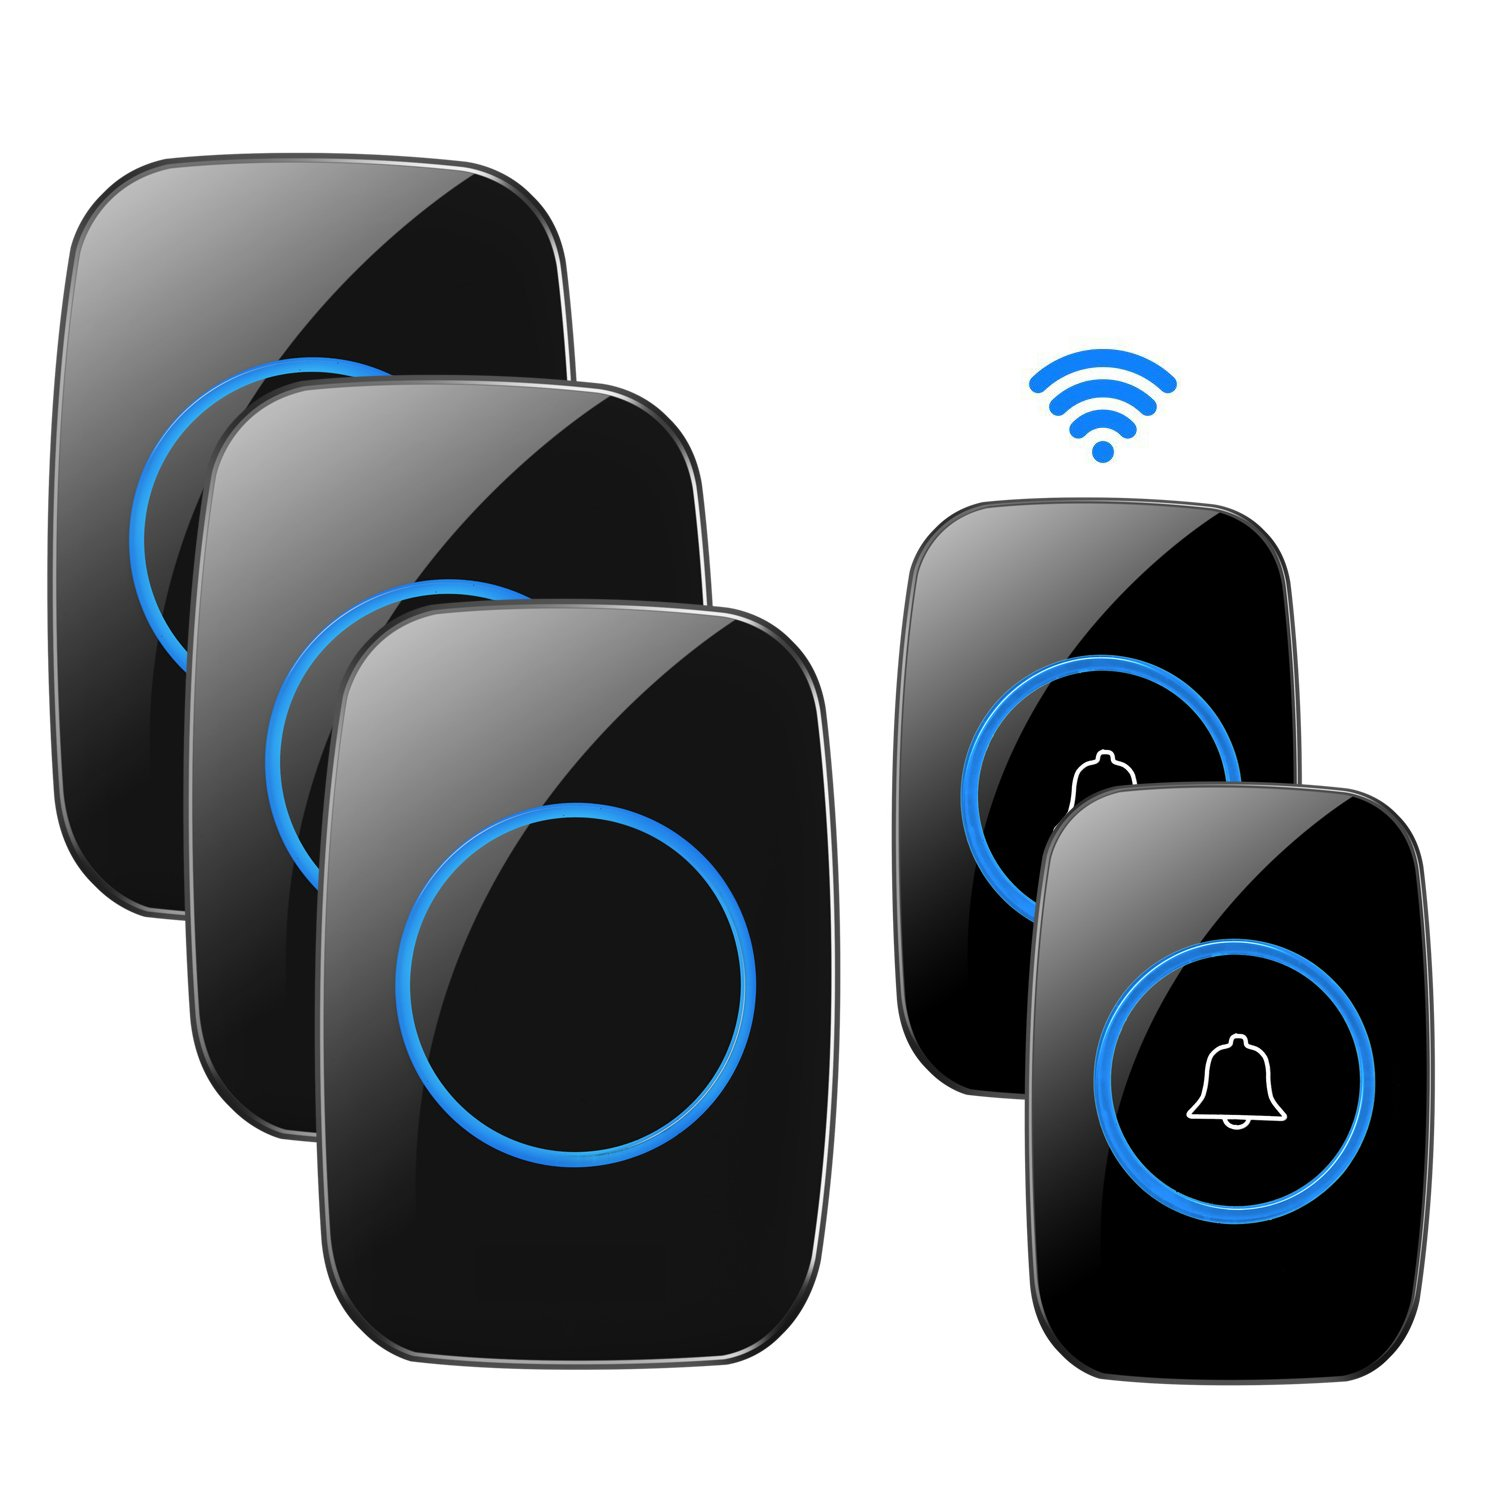 Wireless Doorbell, 1PlusOne Waterproof Door Chime Kit Includes Push Button and Plug-In Receiver, Operating over 1000 feet Range, CD Quality Sound and LED Flash (2 Transmitter + 3 Receiver, Black)